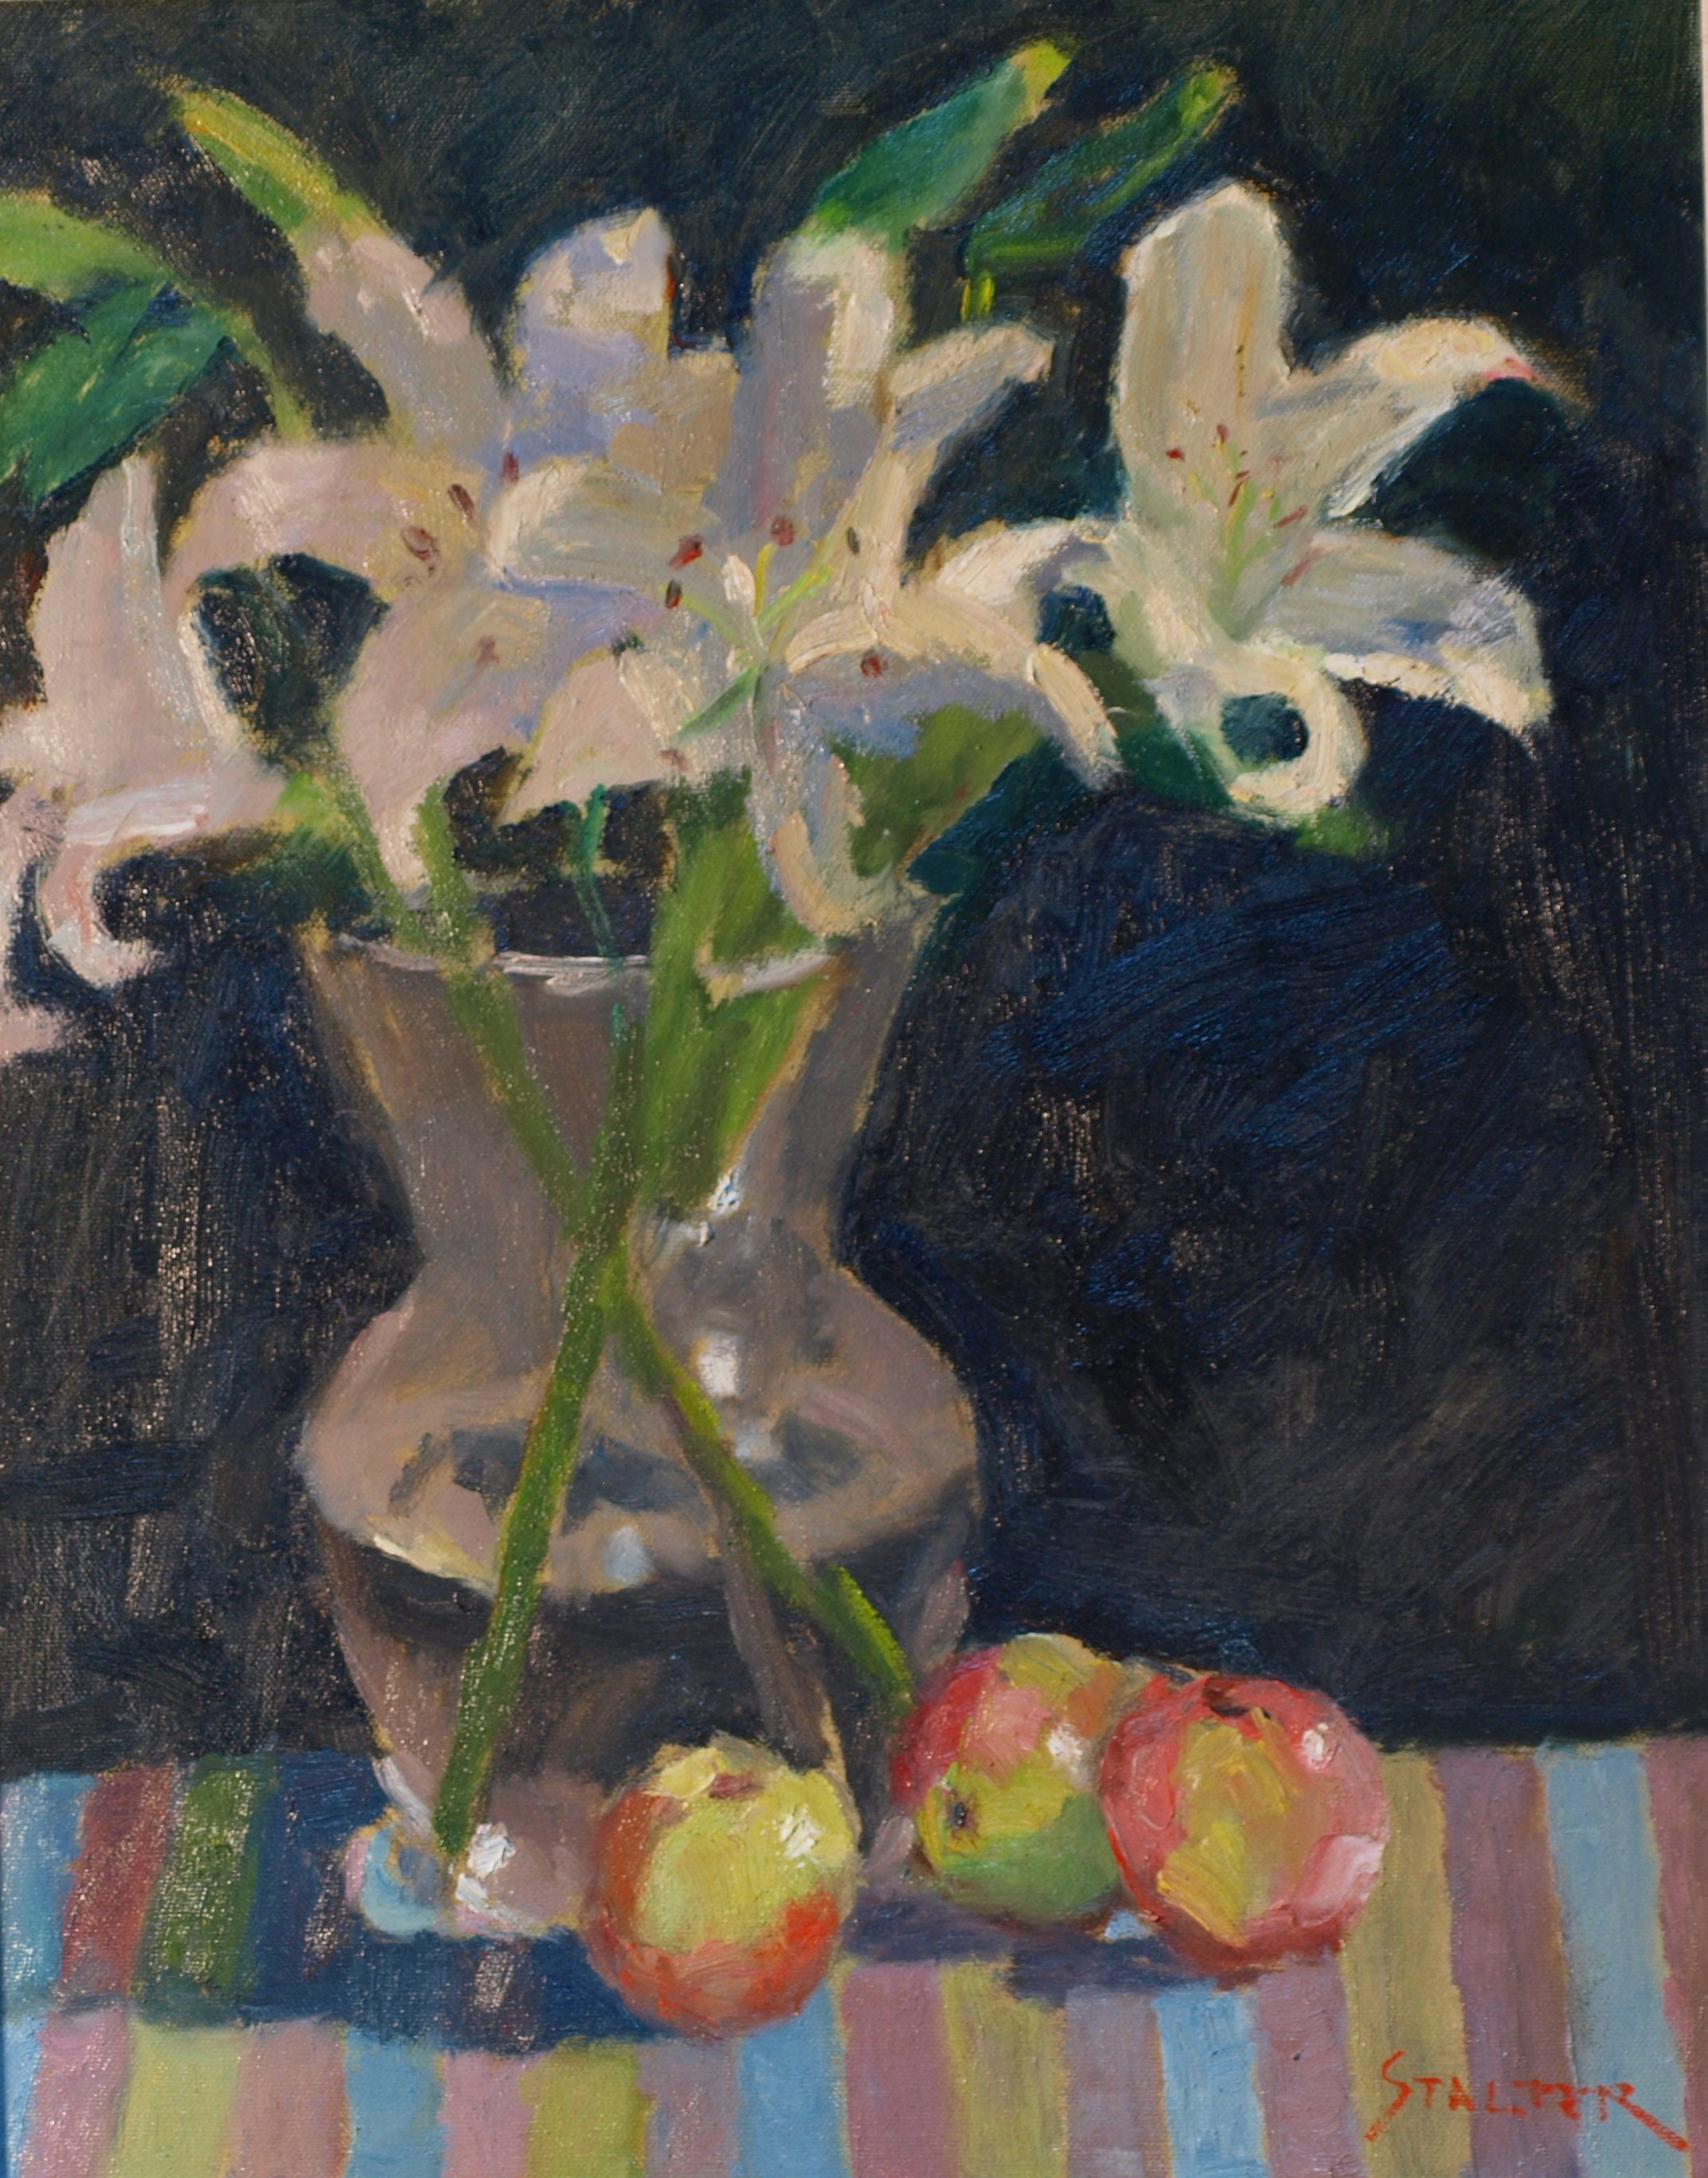 Lilies and Apples, Oil on Canvas, 20 x 16 Inches, by Richard Stalter, $450